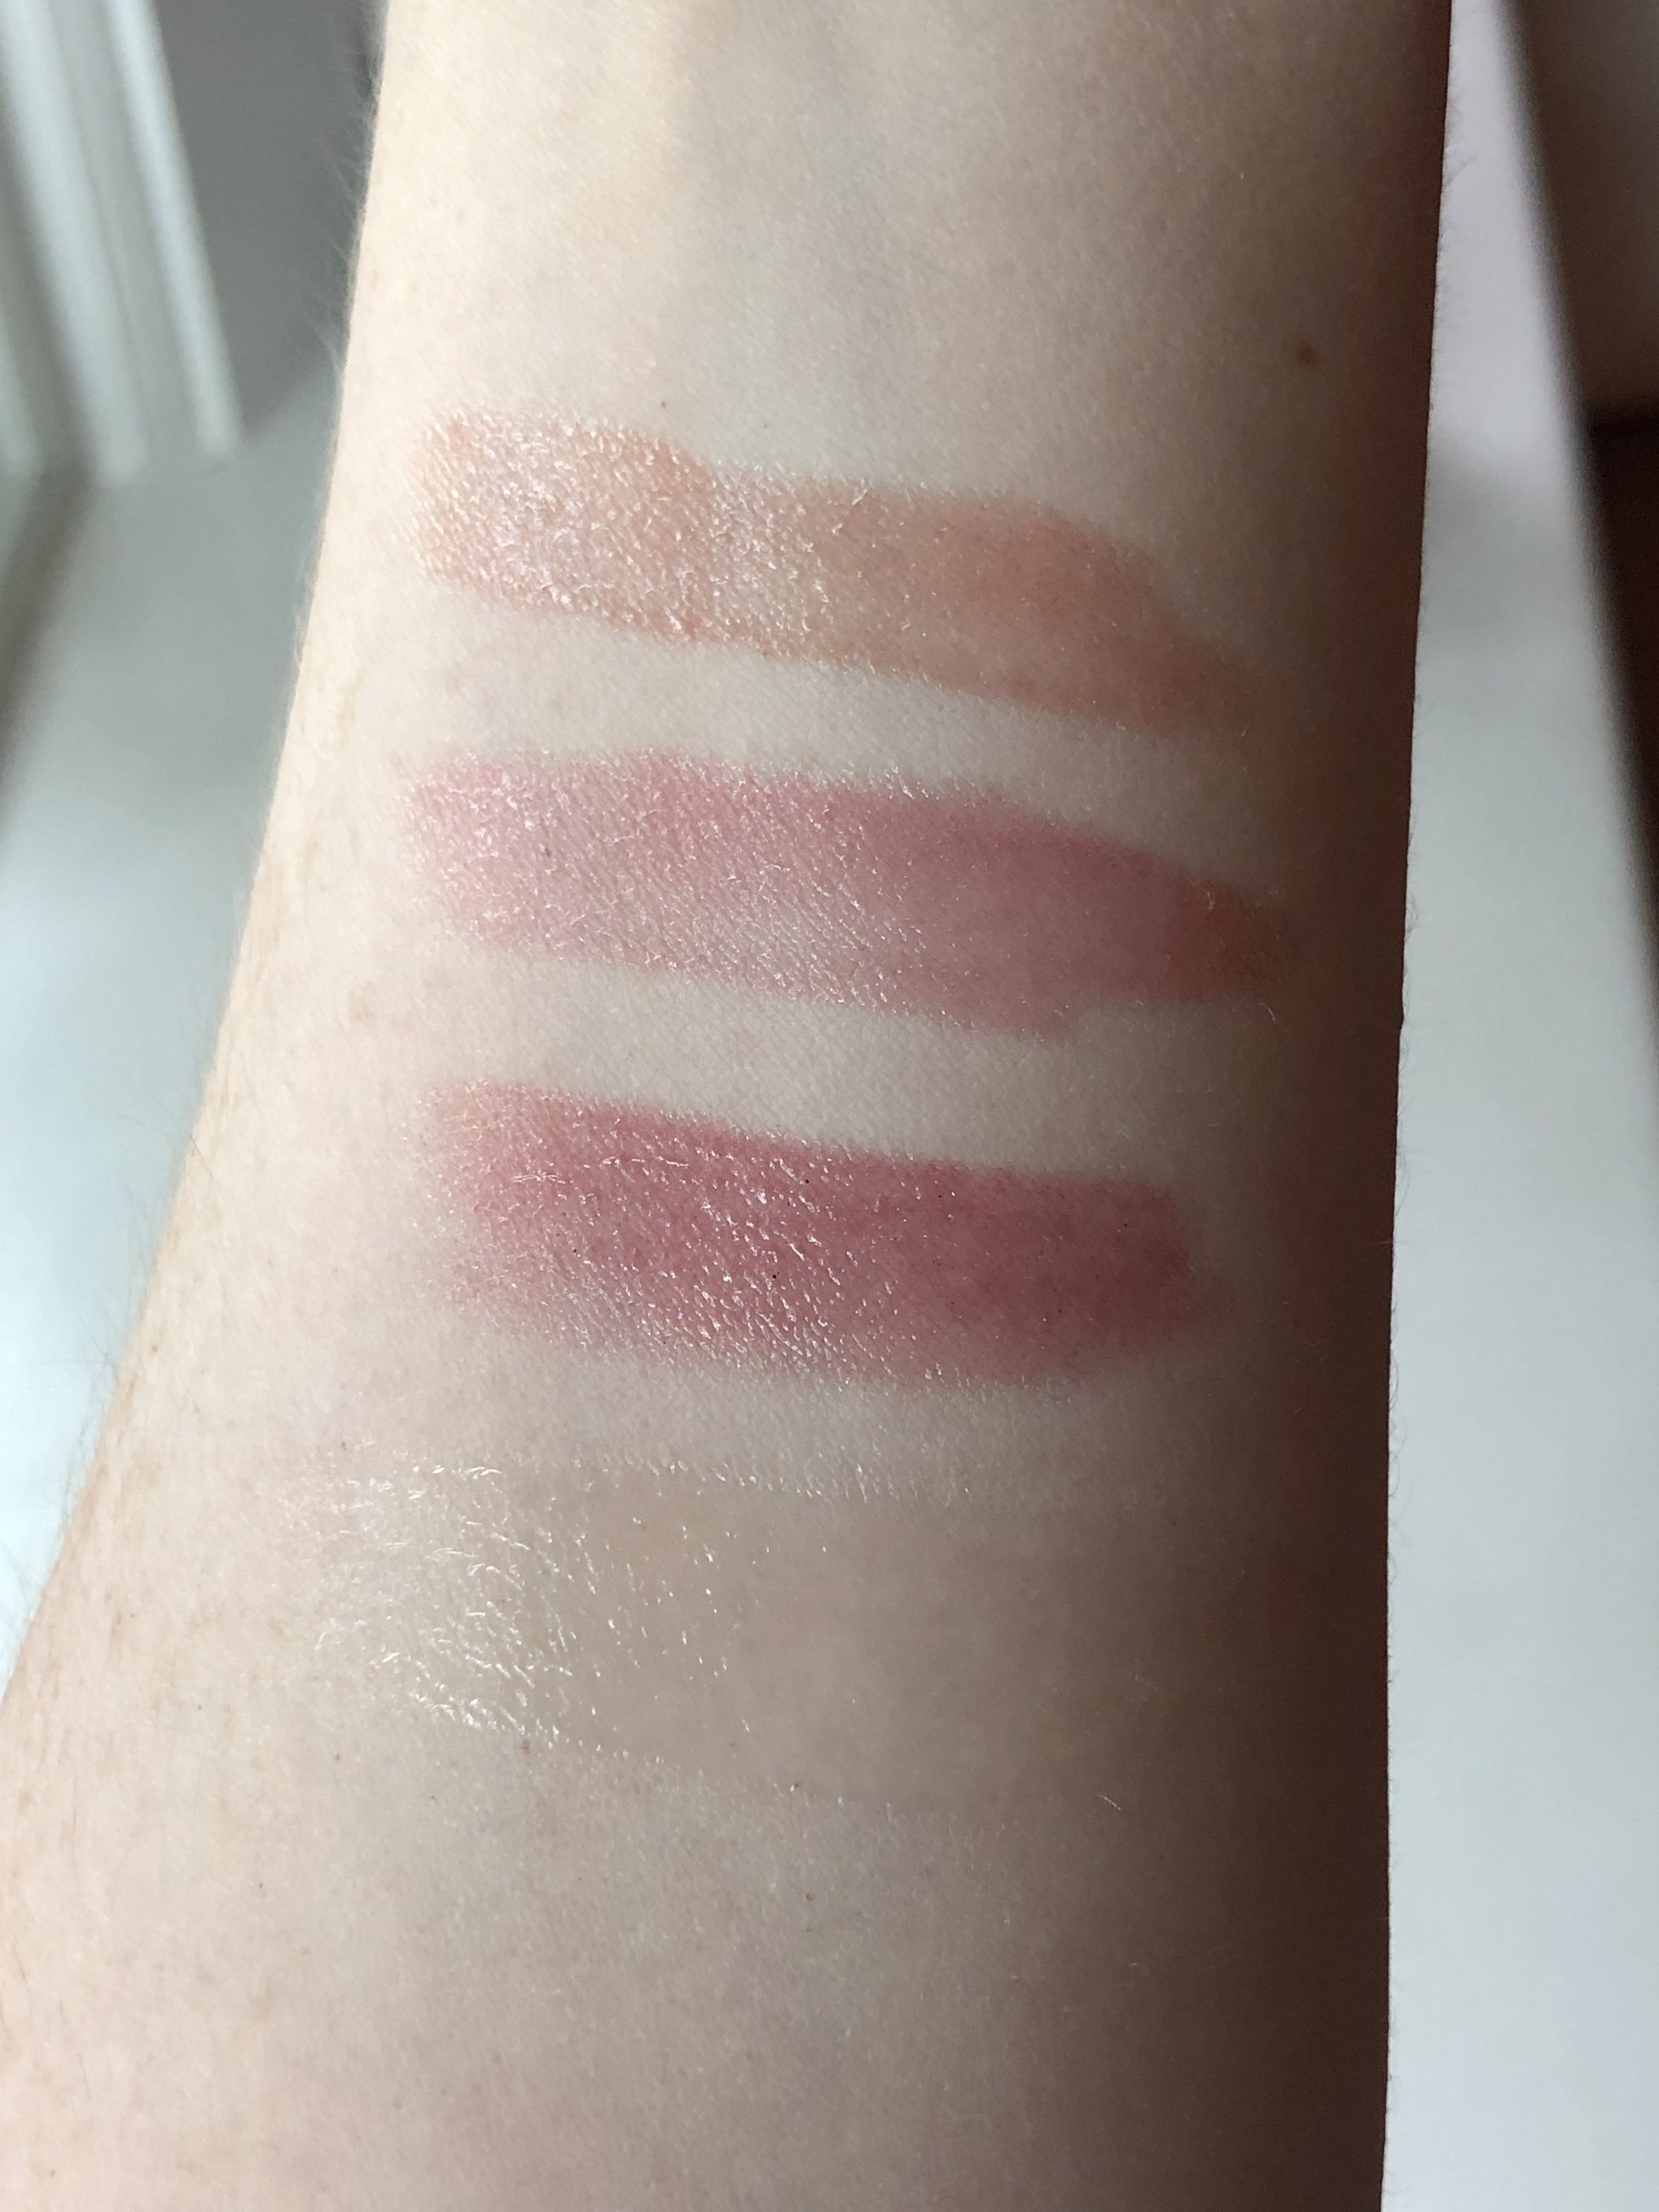 Lip gloss swatches: from top to bottom, Cozy, Blossom, Juneberry, & Dream